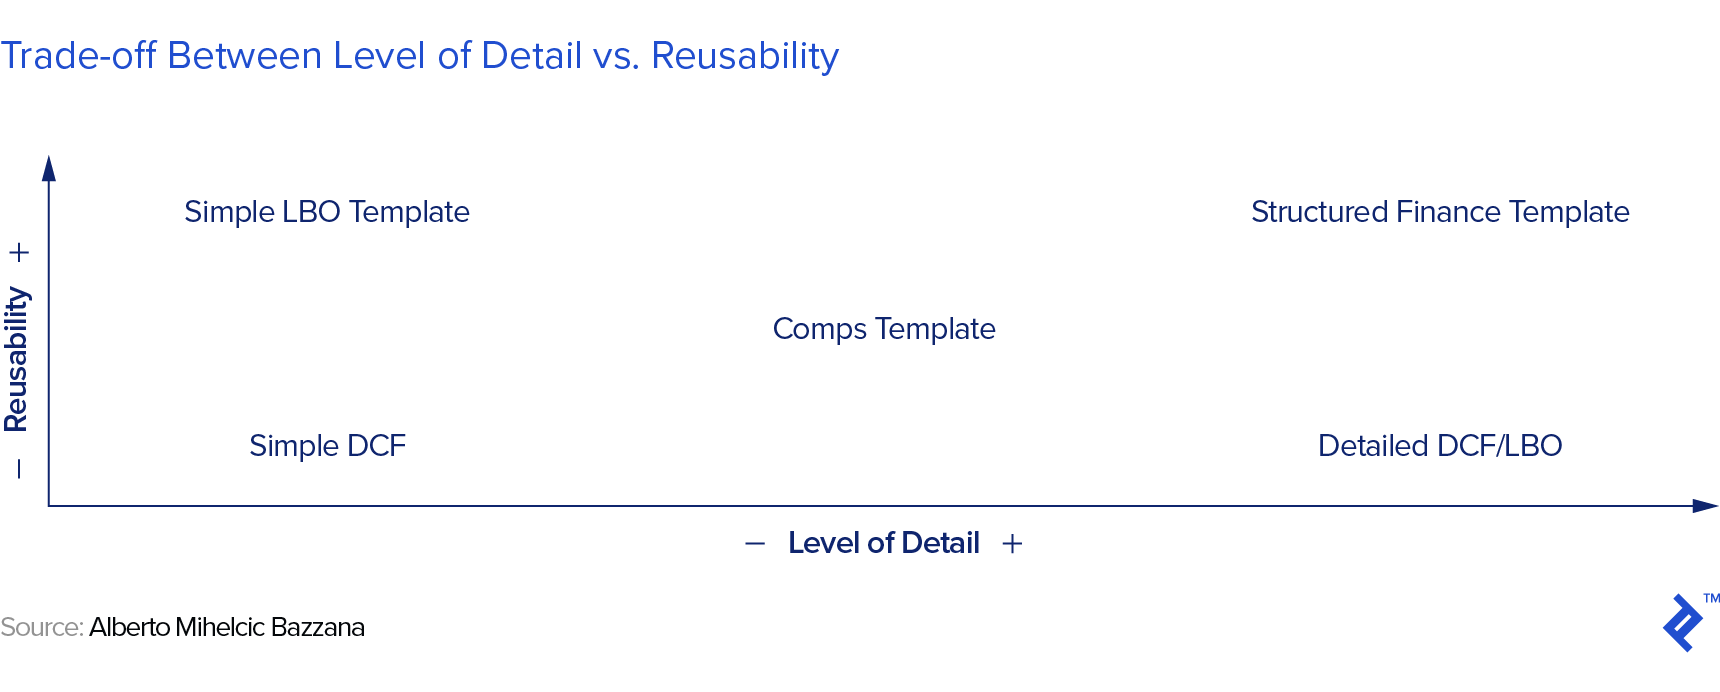 Graphic representation of the trade-off between level of detail vs. reusability